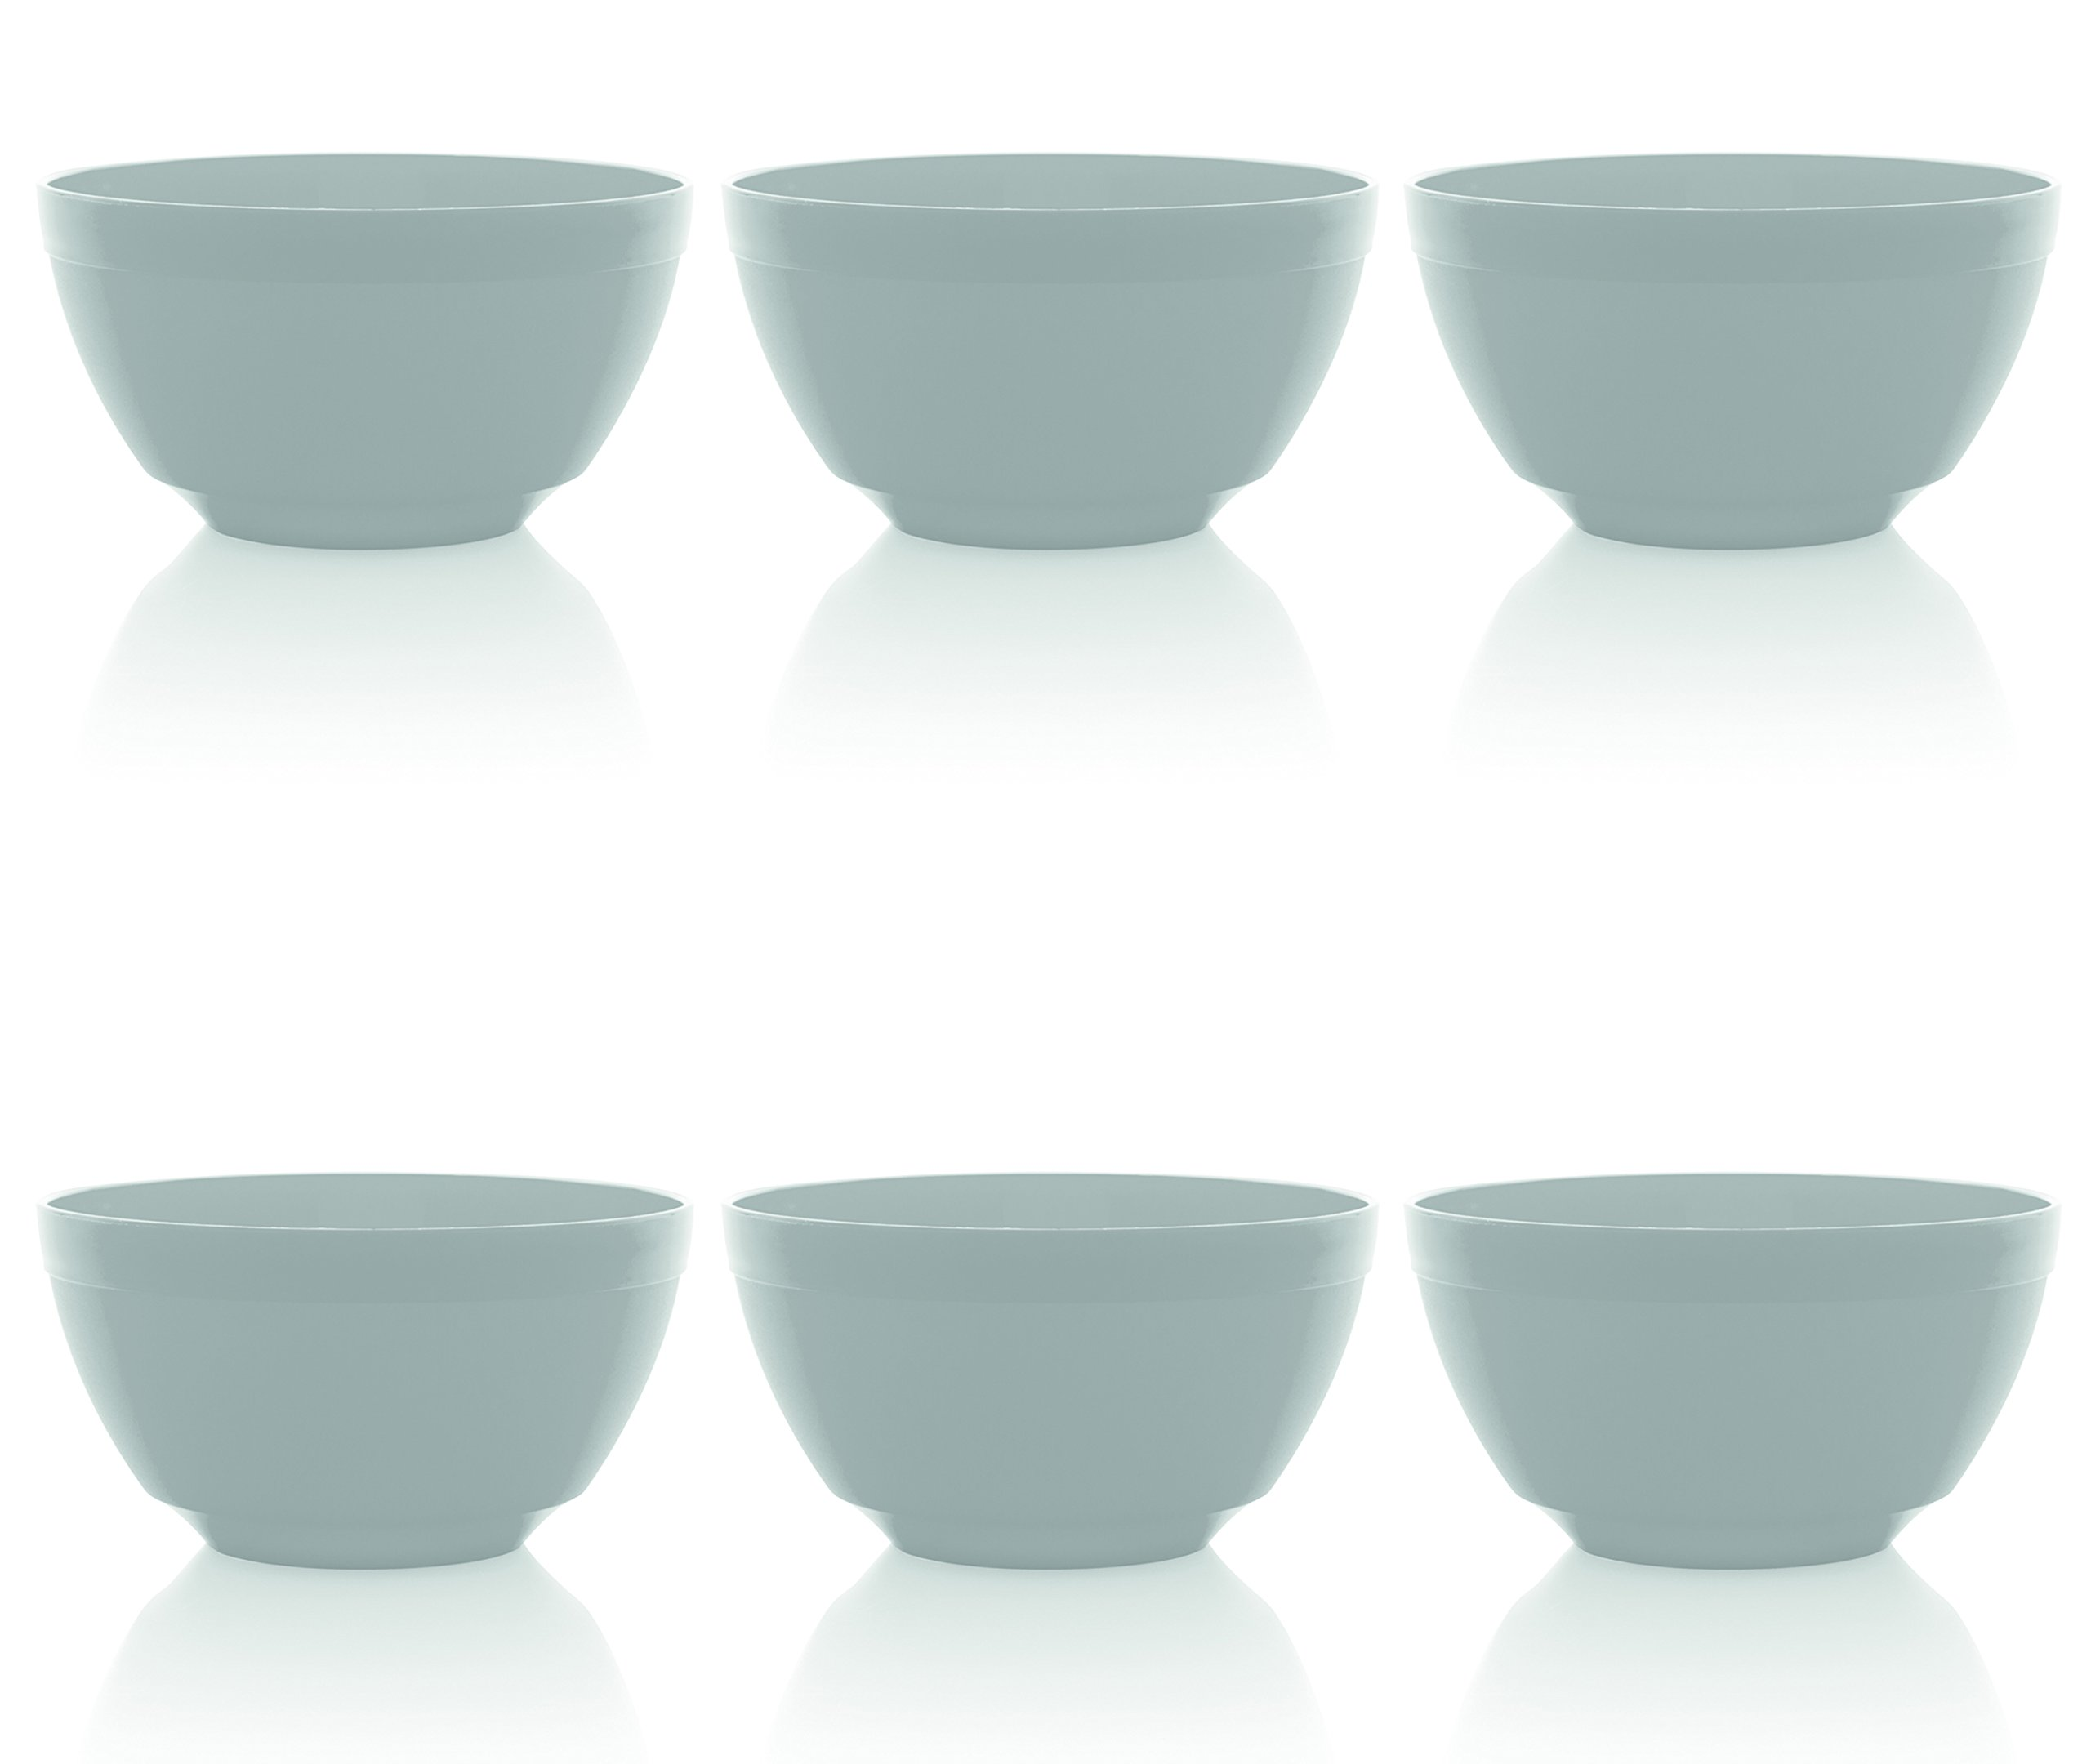 Ou Premium Design- Unbreakable Luna Bowls, Set of 6 (17 oz, White)